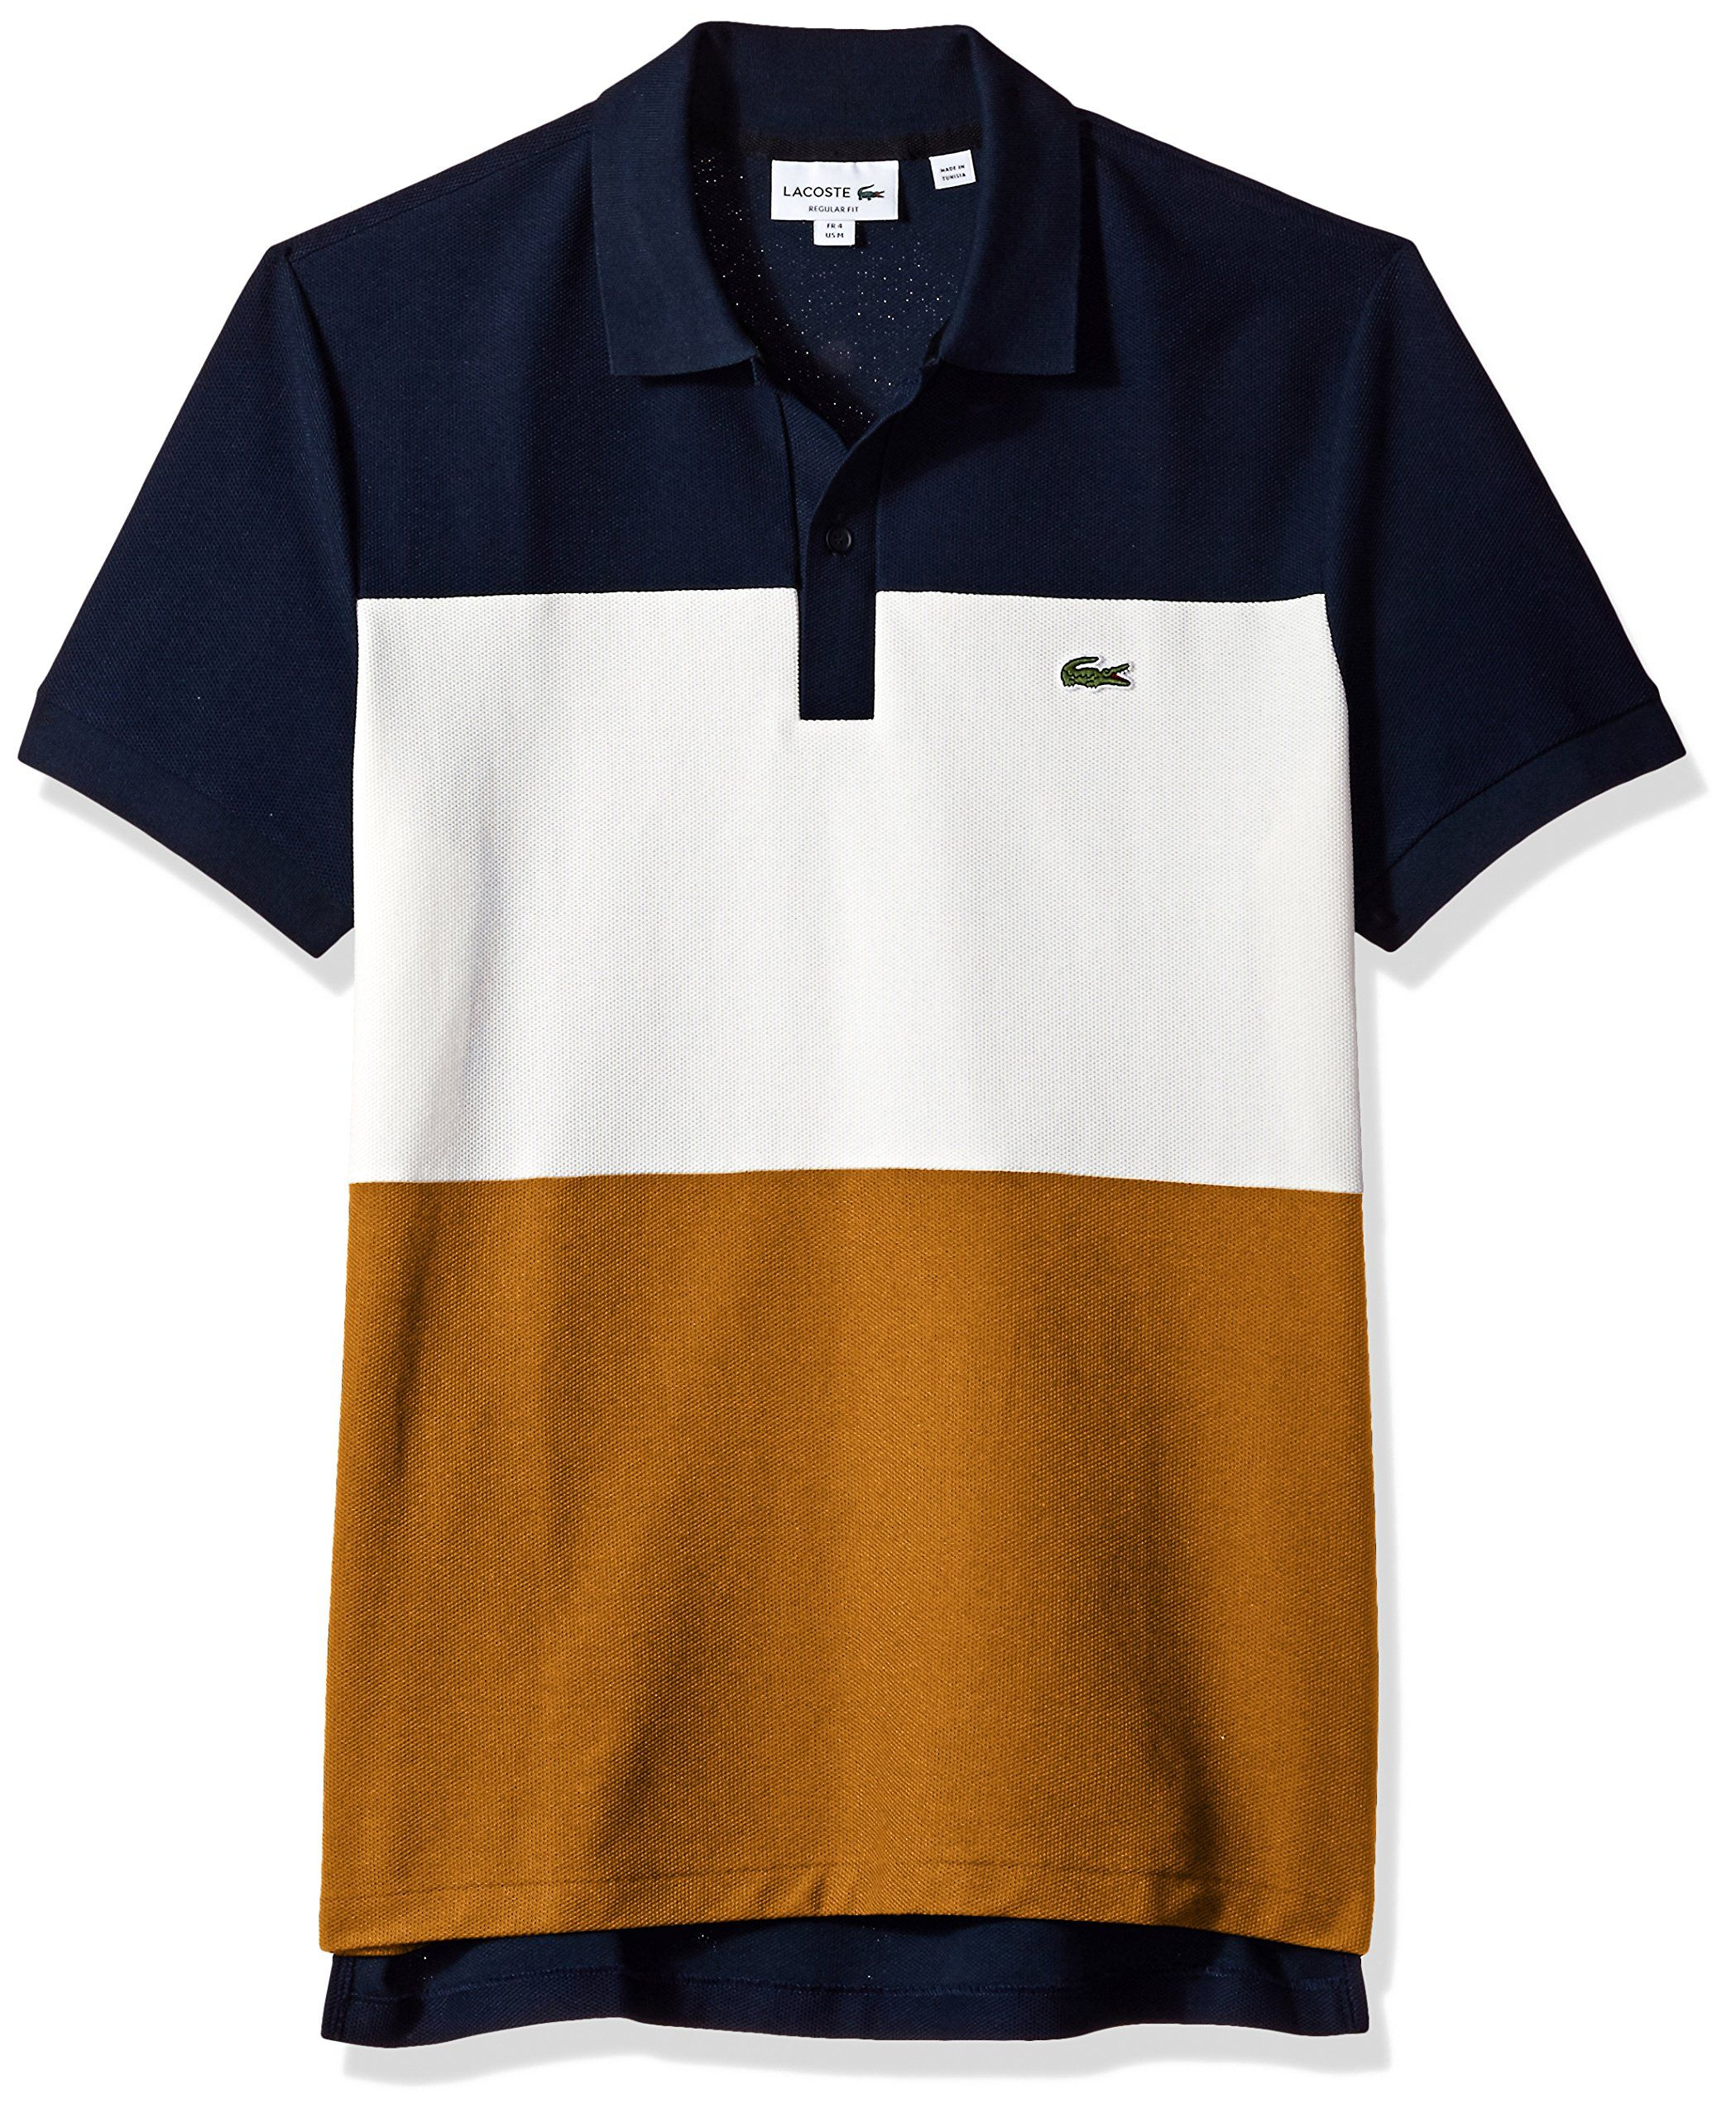 1eb6a9da Lacoste Mens Short Sleeve Noppe Pique Striped Color Block Polo Navy ...